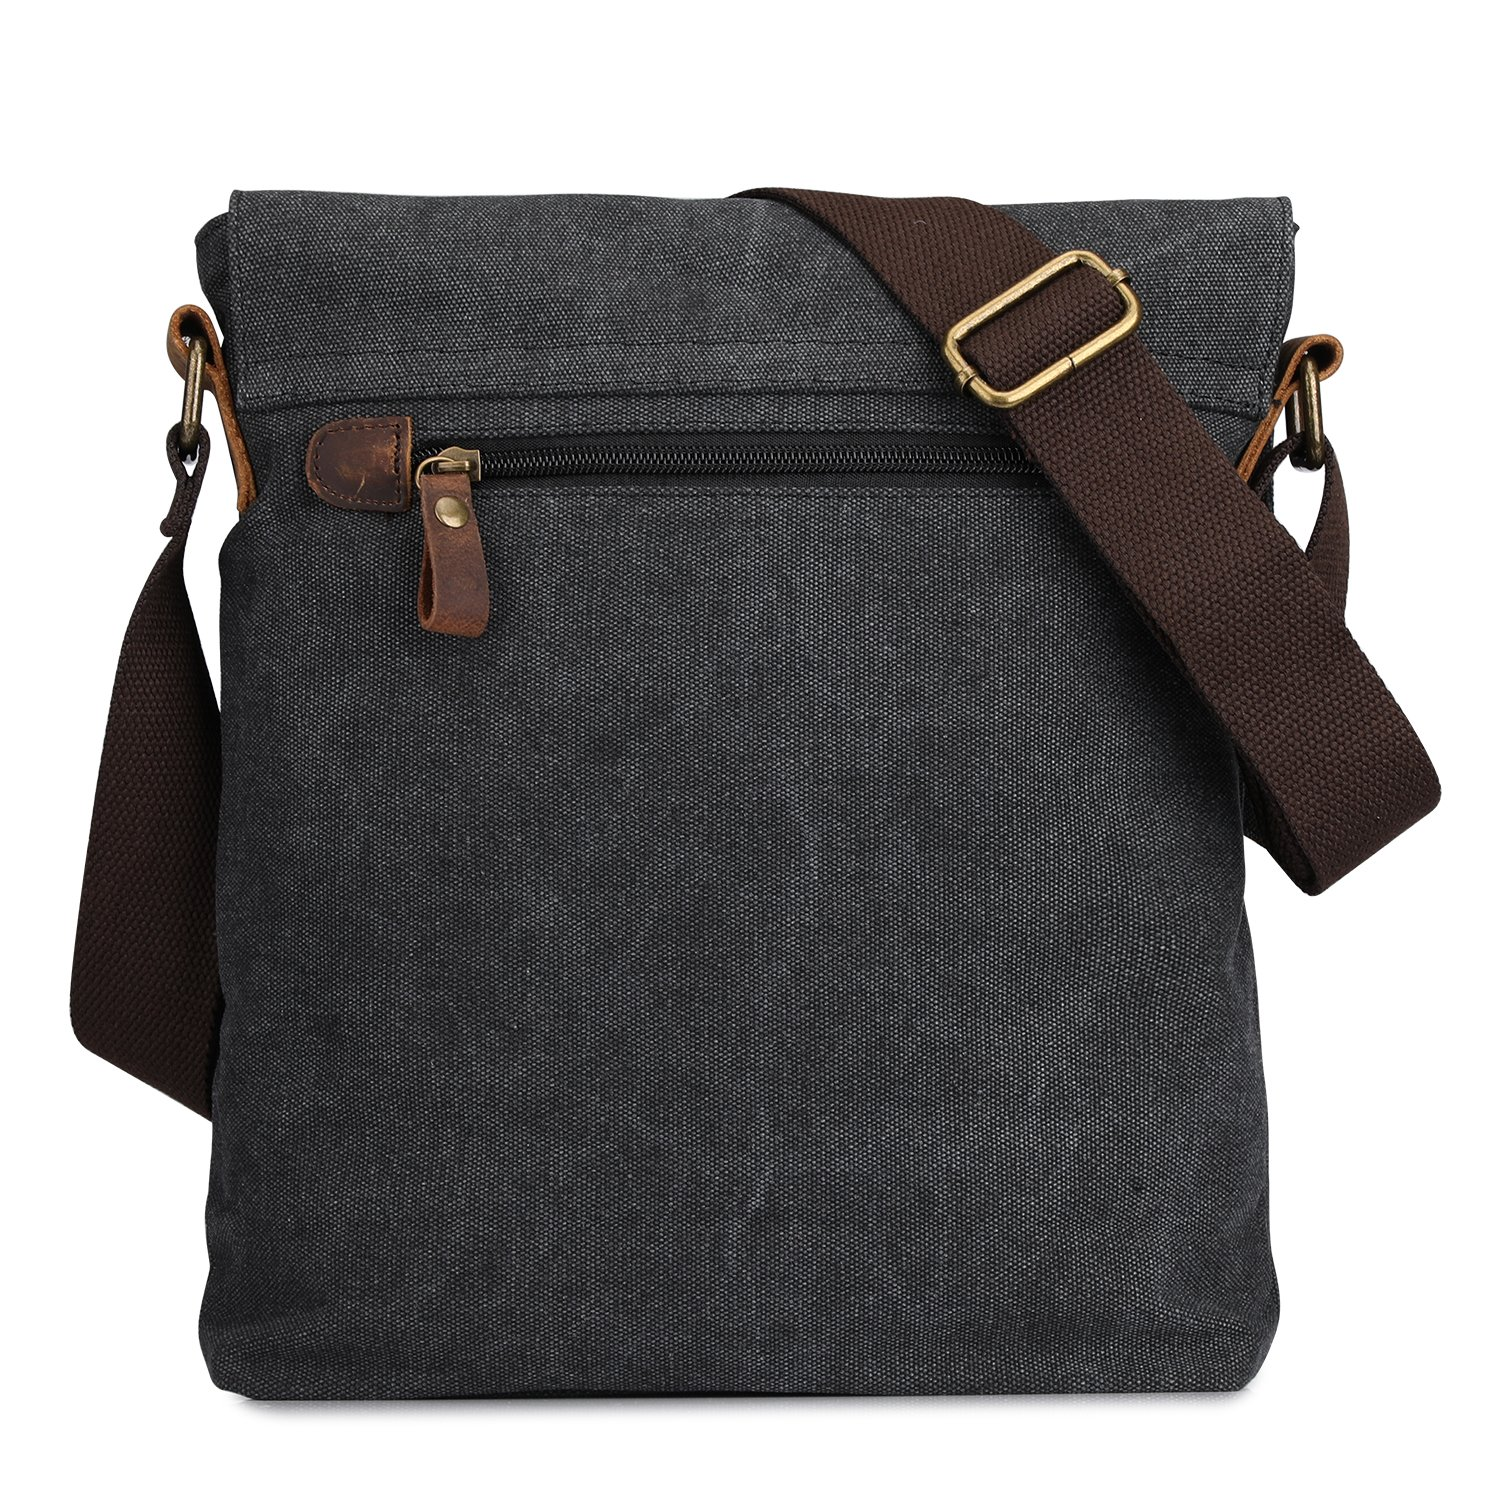 S-ZONE Vintage Lightweight Small Canvas Messenger Bag Travel Shoulder Crossbody Purse Dark (Gray) by S-ZONE (Image #4)